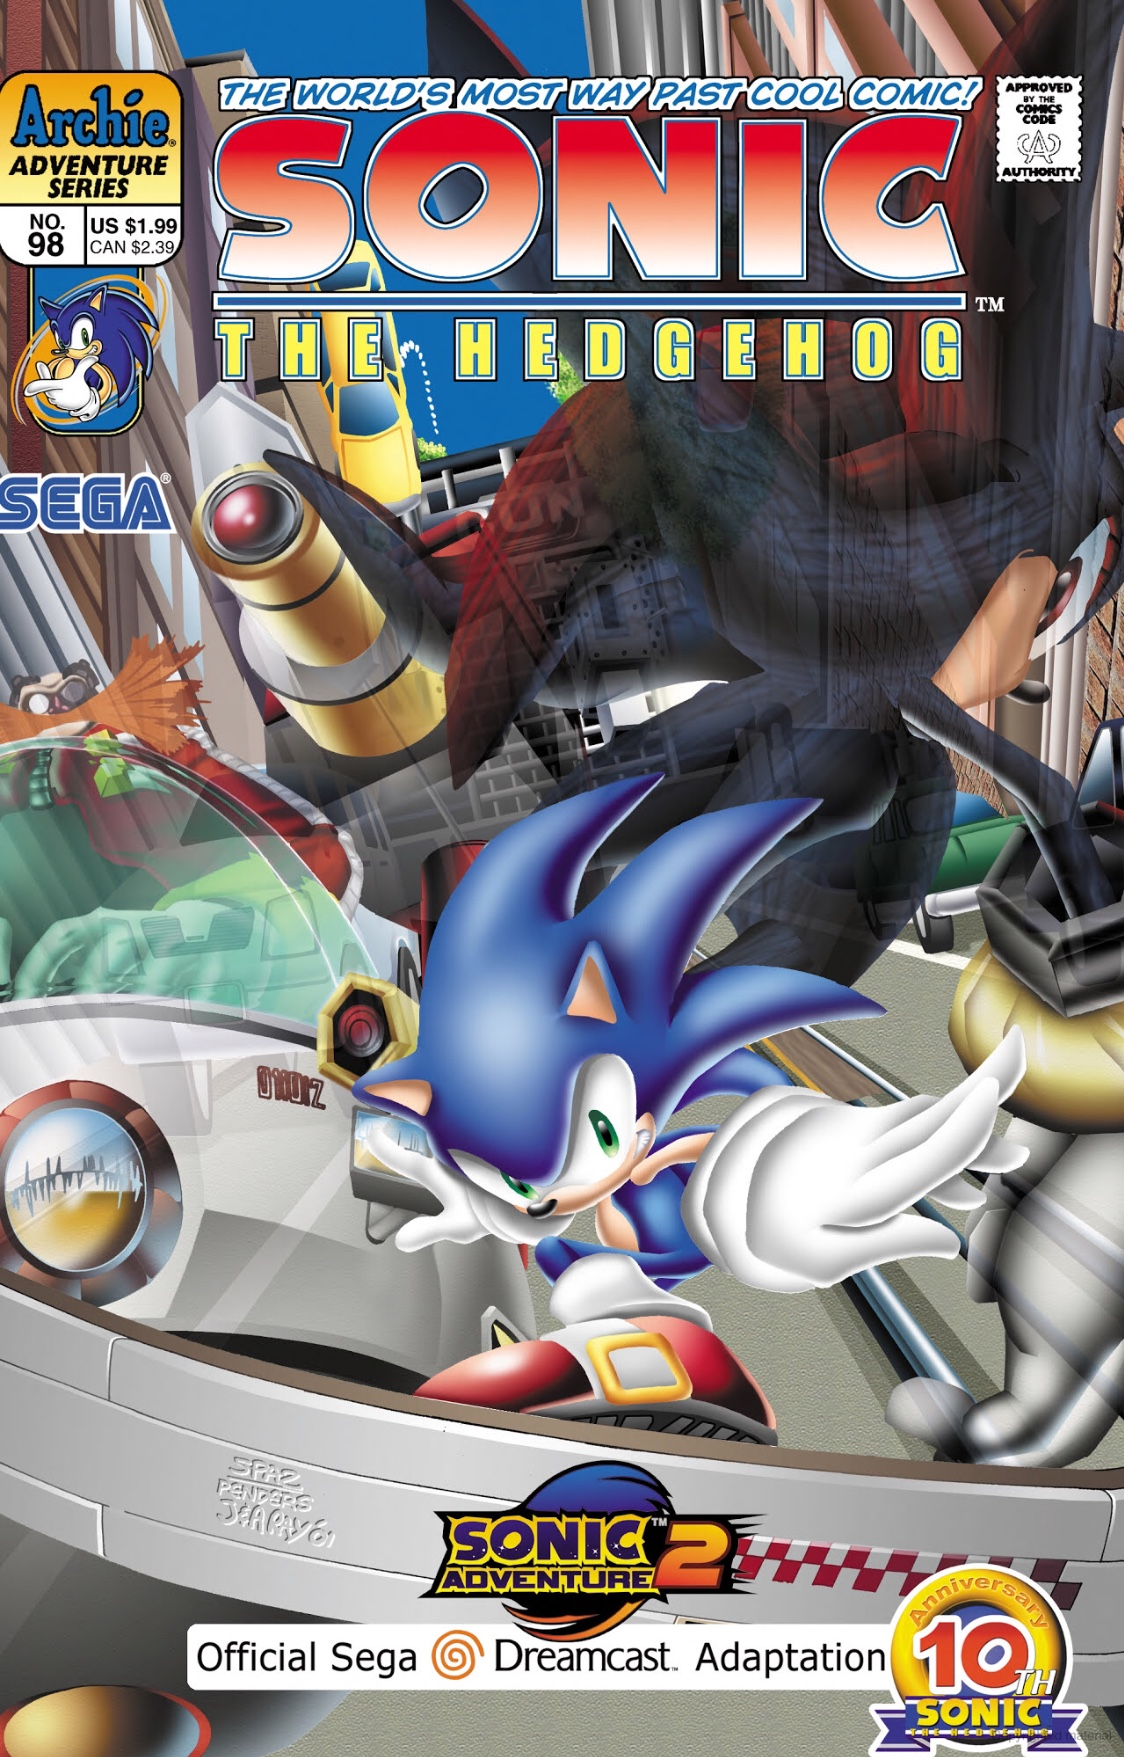 archie sonic the hedgehog issue 98 sonic news network